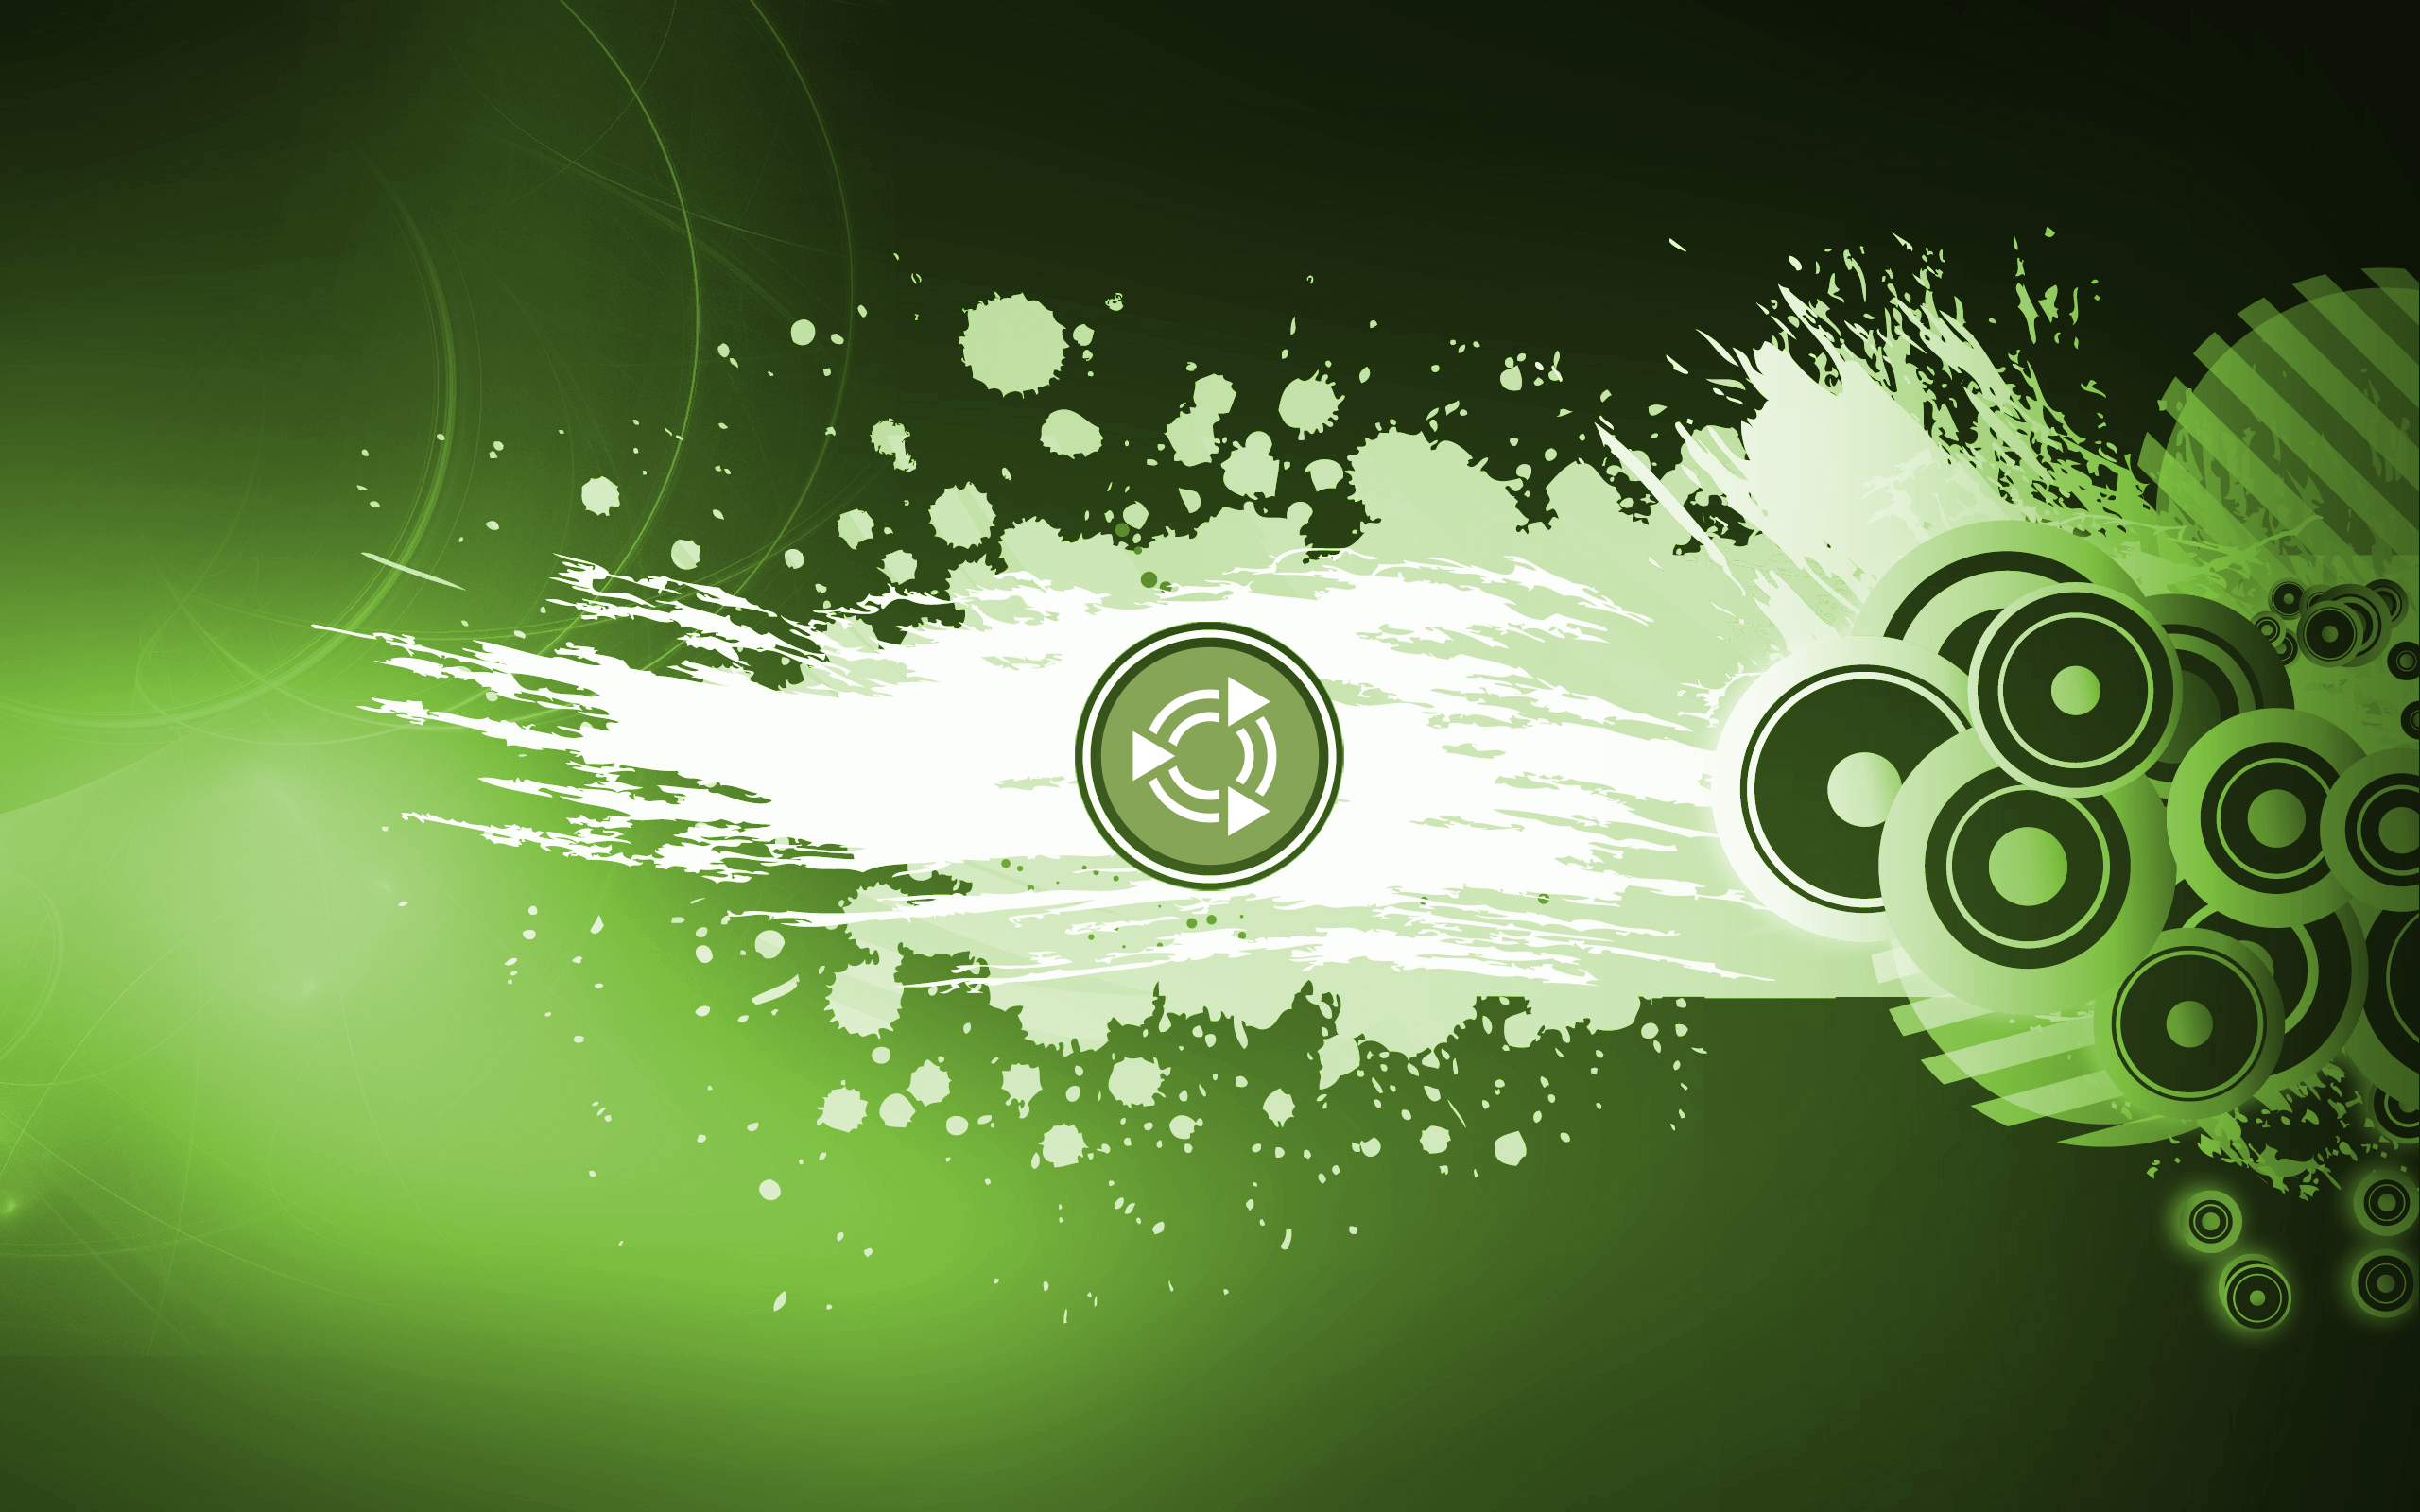 ubuntu mate circles wallpaper - artwork - ubuntu mate community